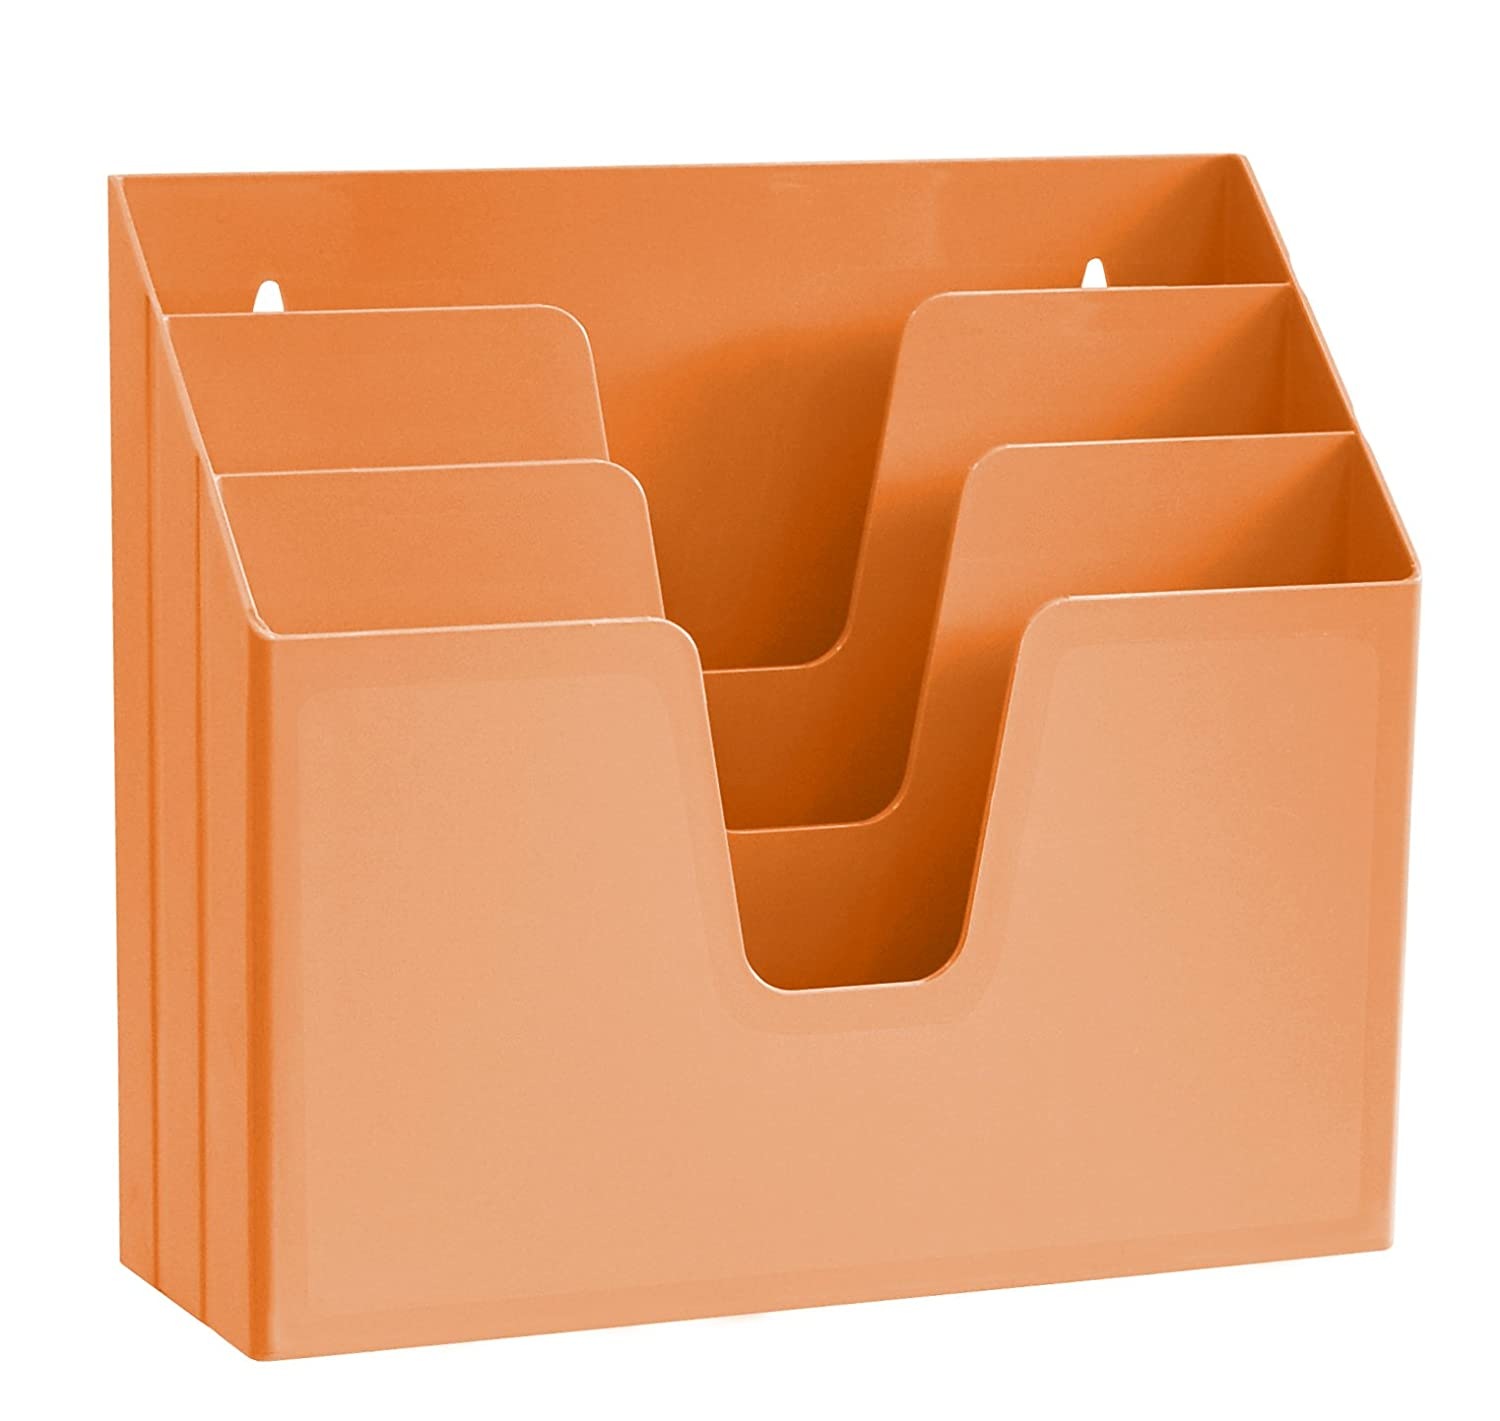 Acrimet Horizontal Triple File Folder Organizer (Orange Citrus Color) 860.L.C